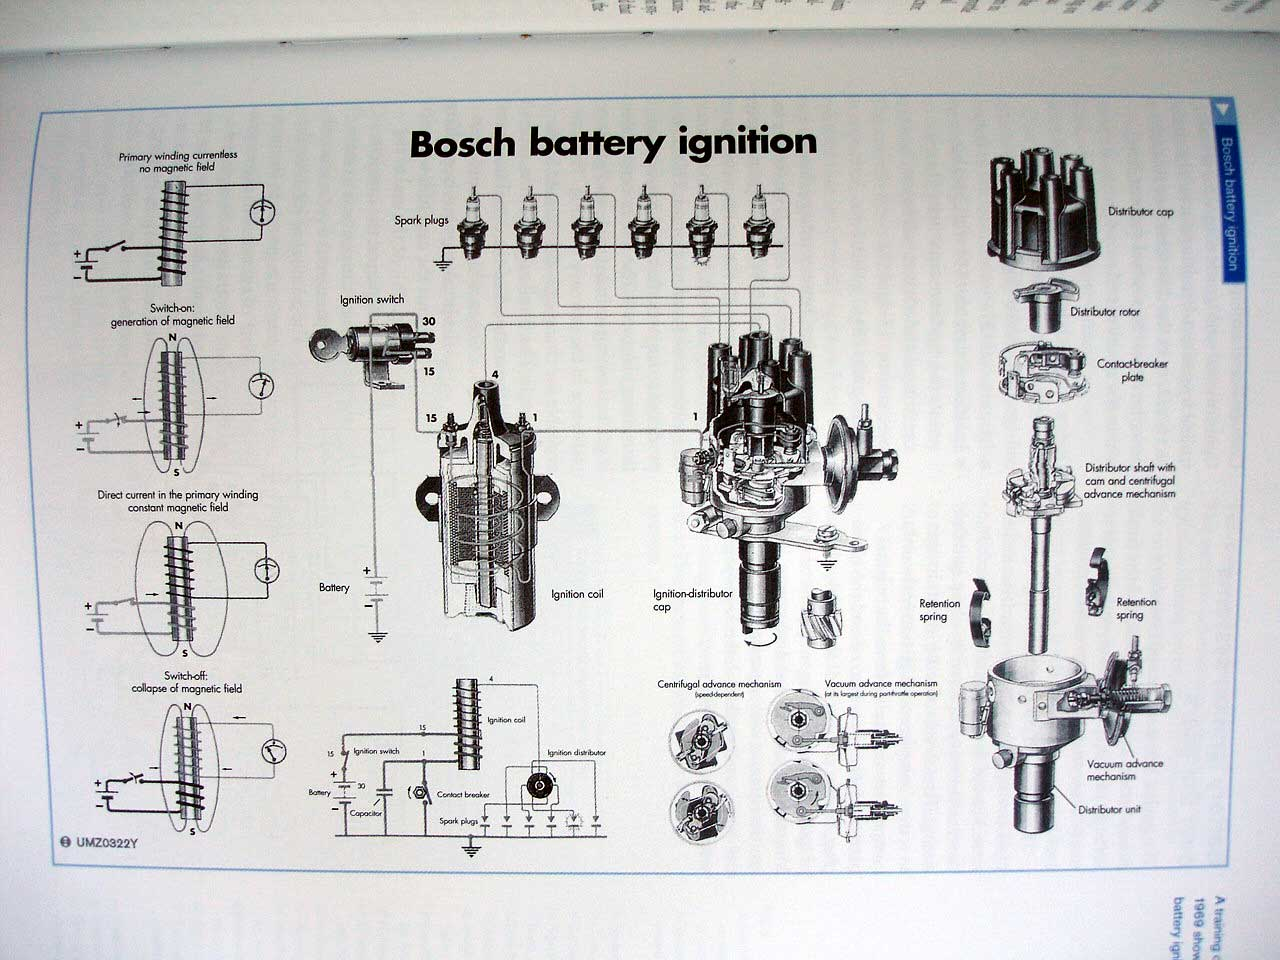 1978 Ford F150 Engine Wiring Manual Guide Diagram 351 Understanding The Ignition System F 150 Parts Catalog Truck